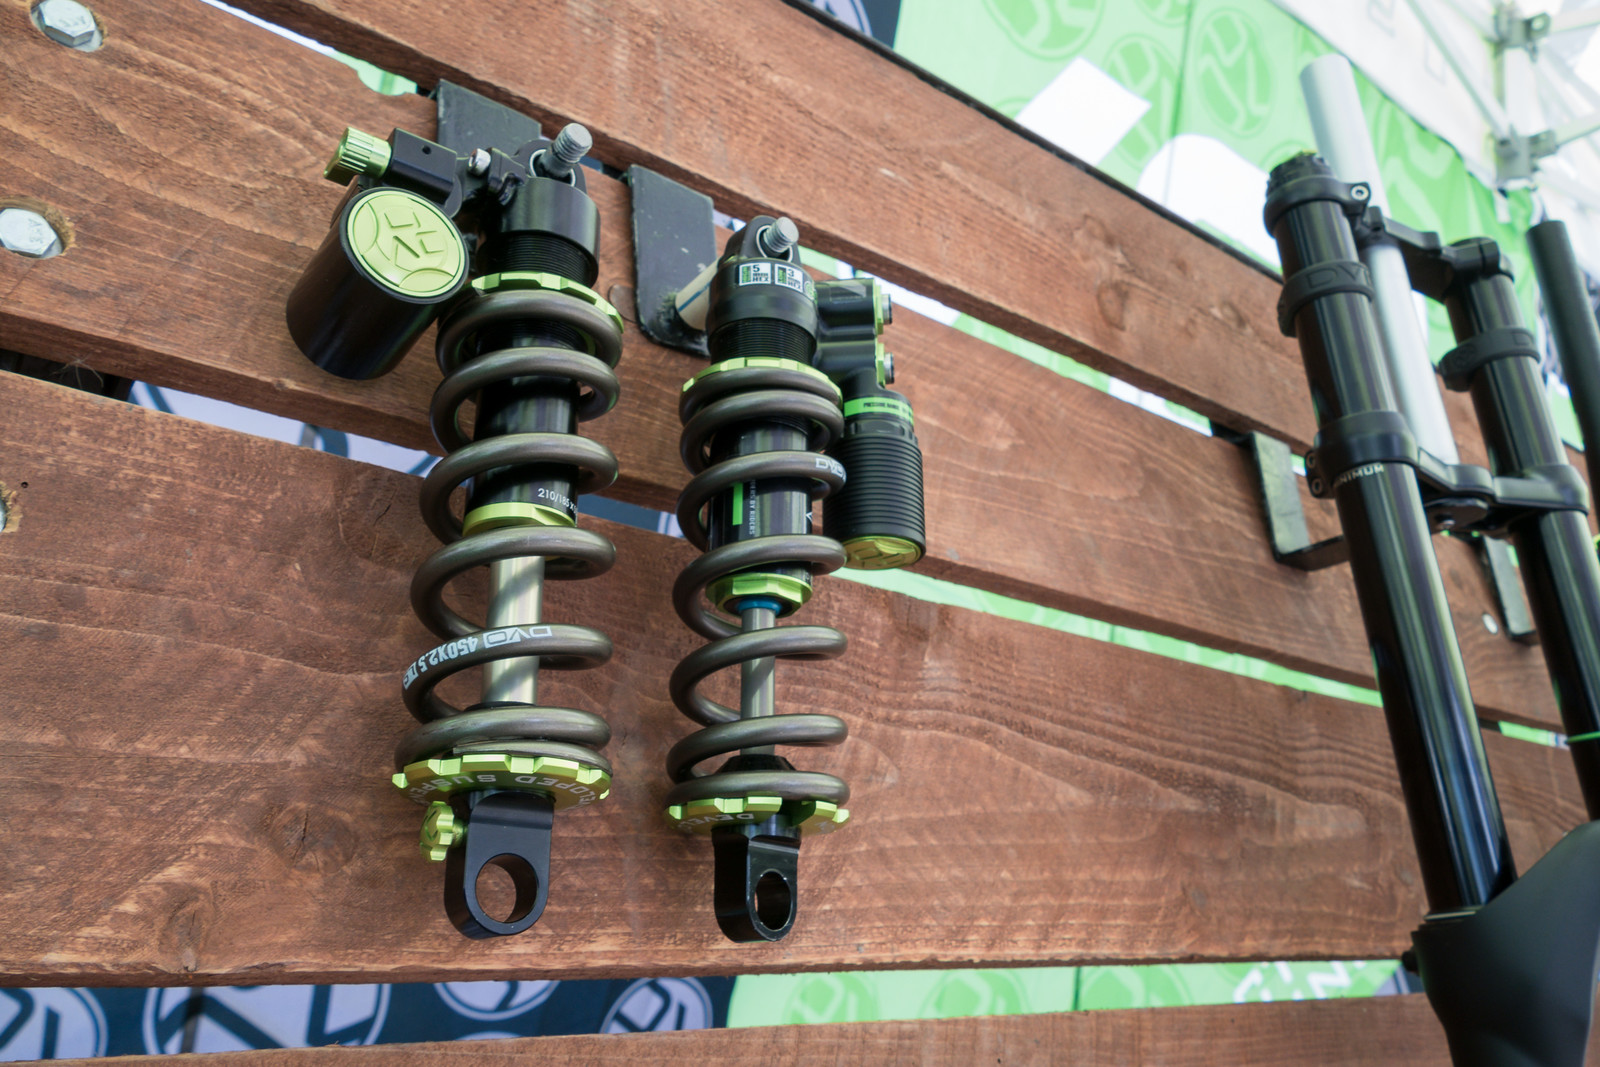 Prototype DVO Jade X and Jade Twin Coil Shocks - PIT BITS - 2019 Crankworx Whistler Bikes and Tech - Mountain Biking Pictures - Vital MTB